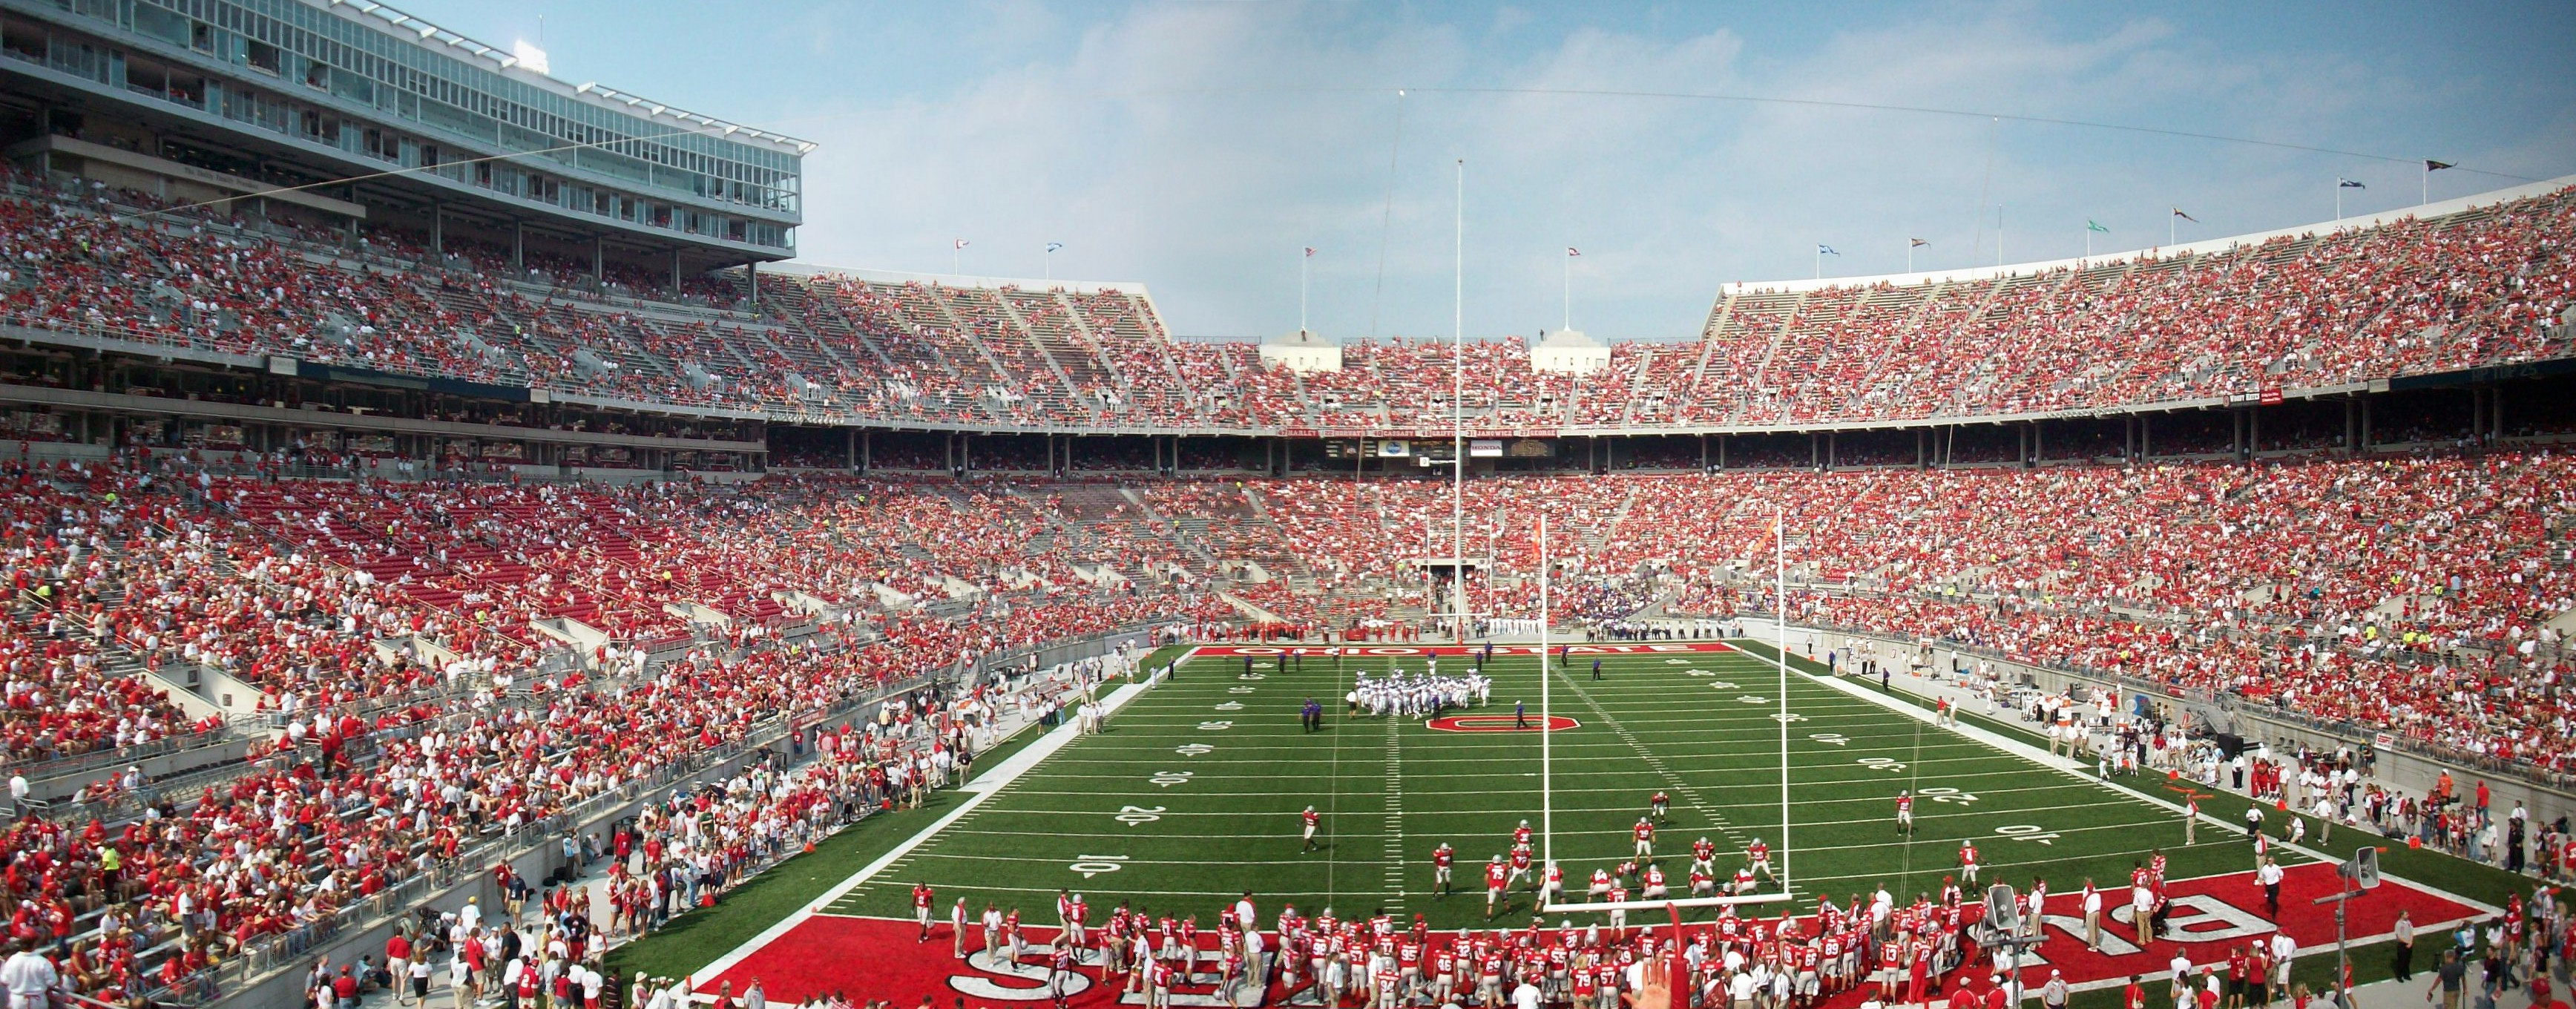 ohio-state-stadium-college-football